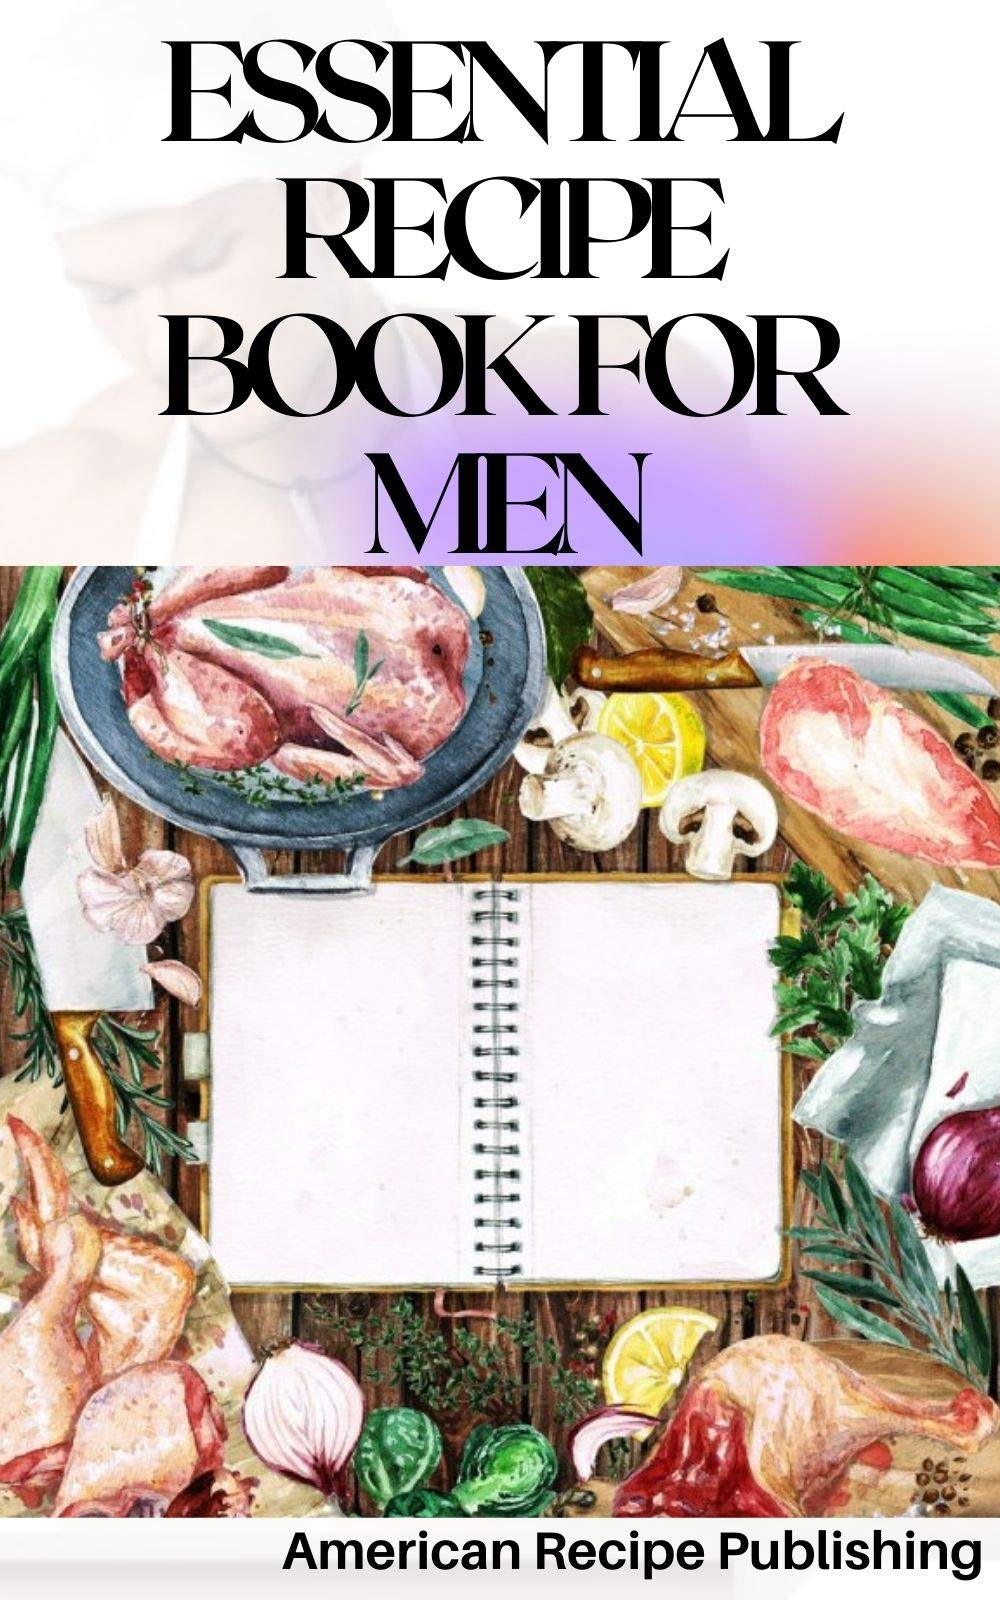 Essential Recipe Book for Men: Compilation of Healthy Tasty Recipes to Keep You Busy in the Kitchen